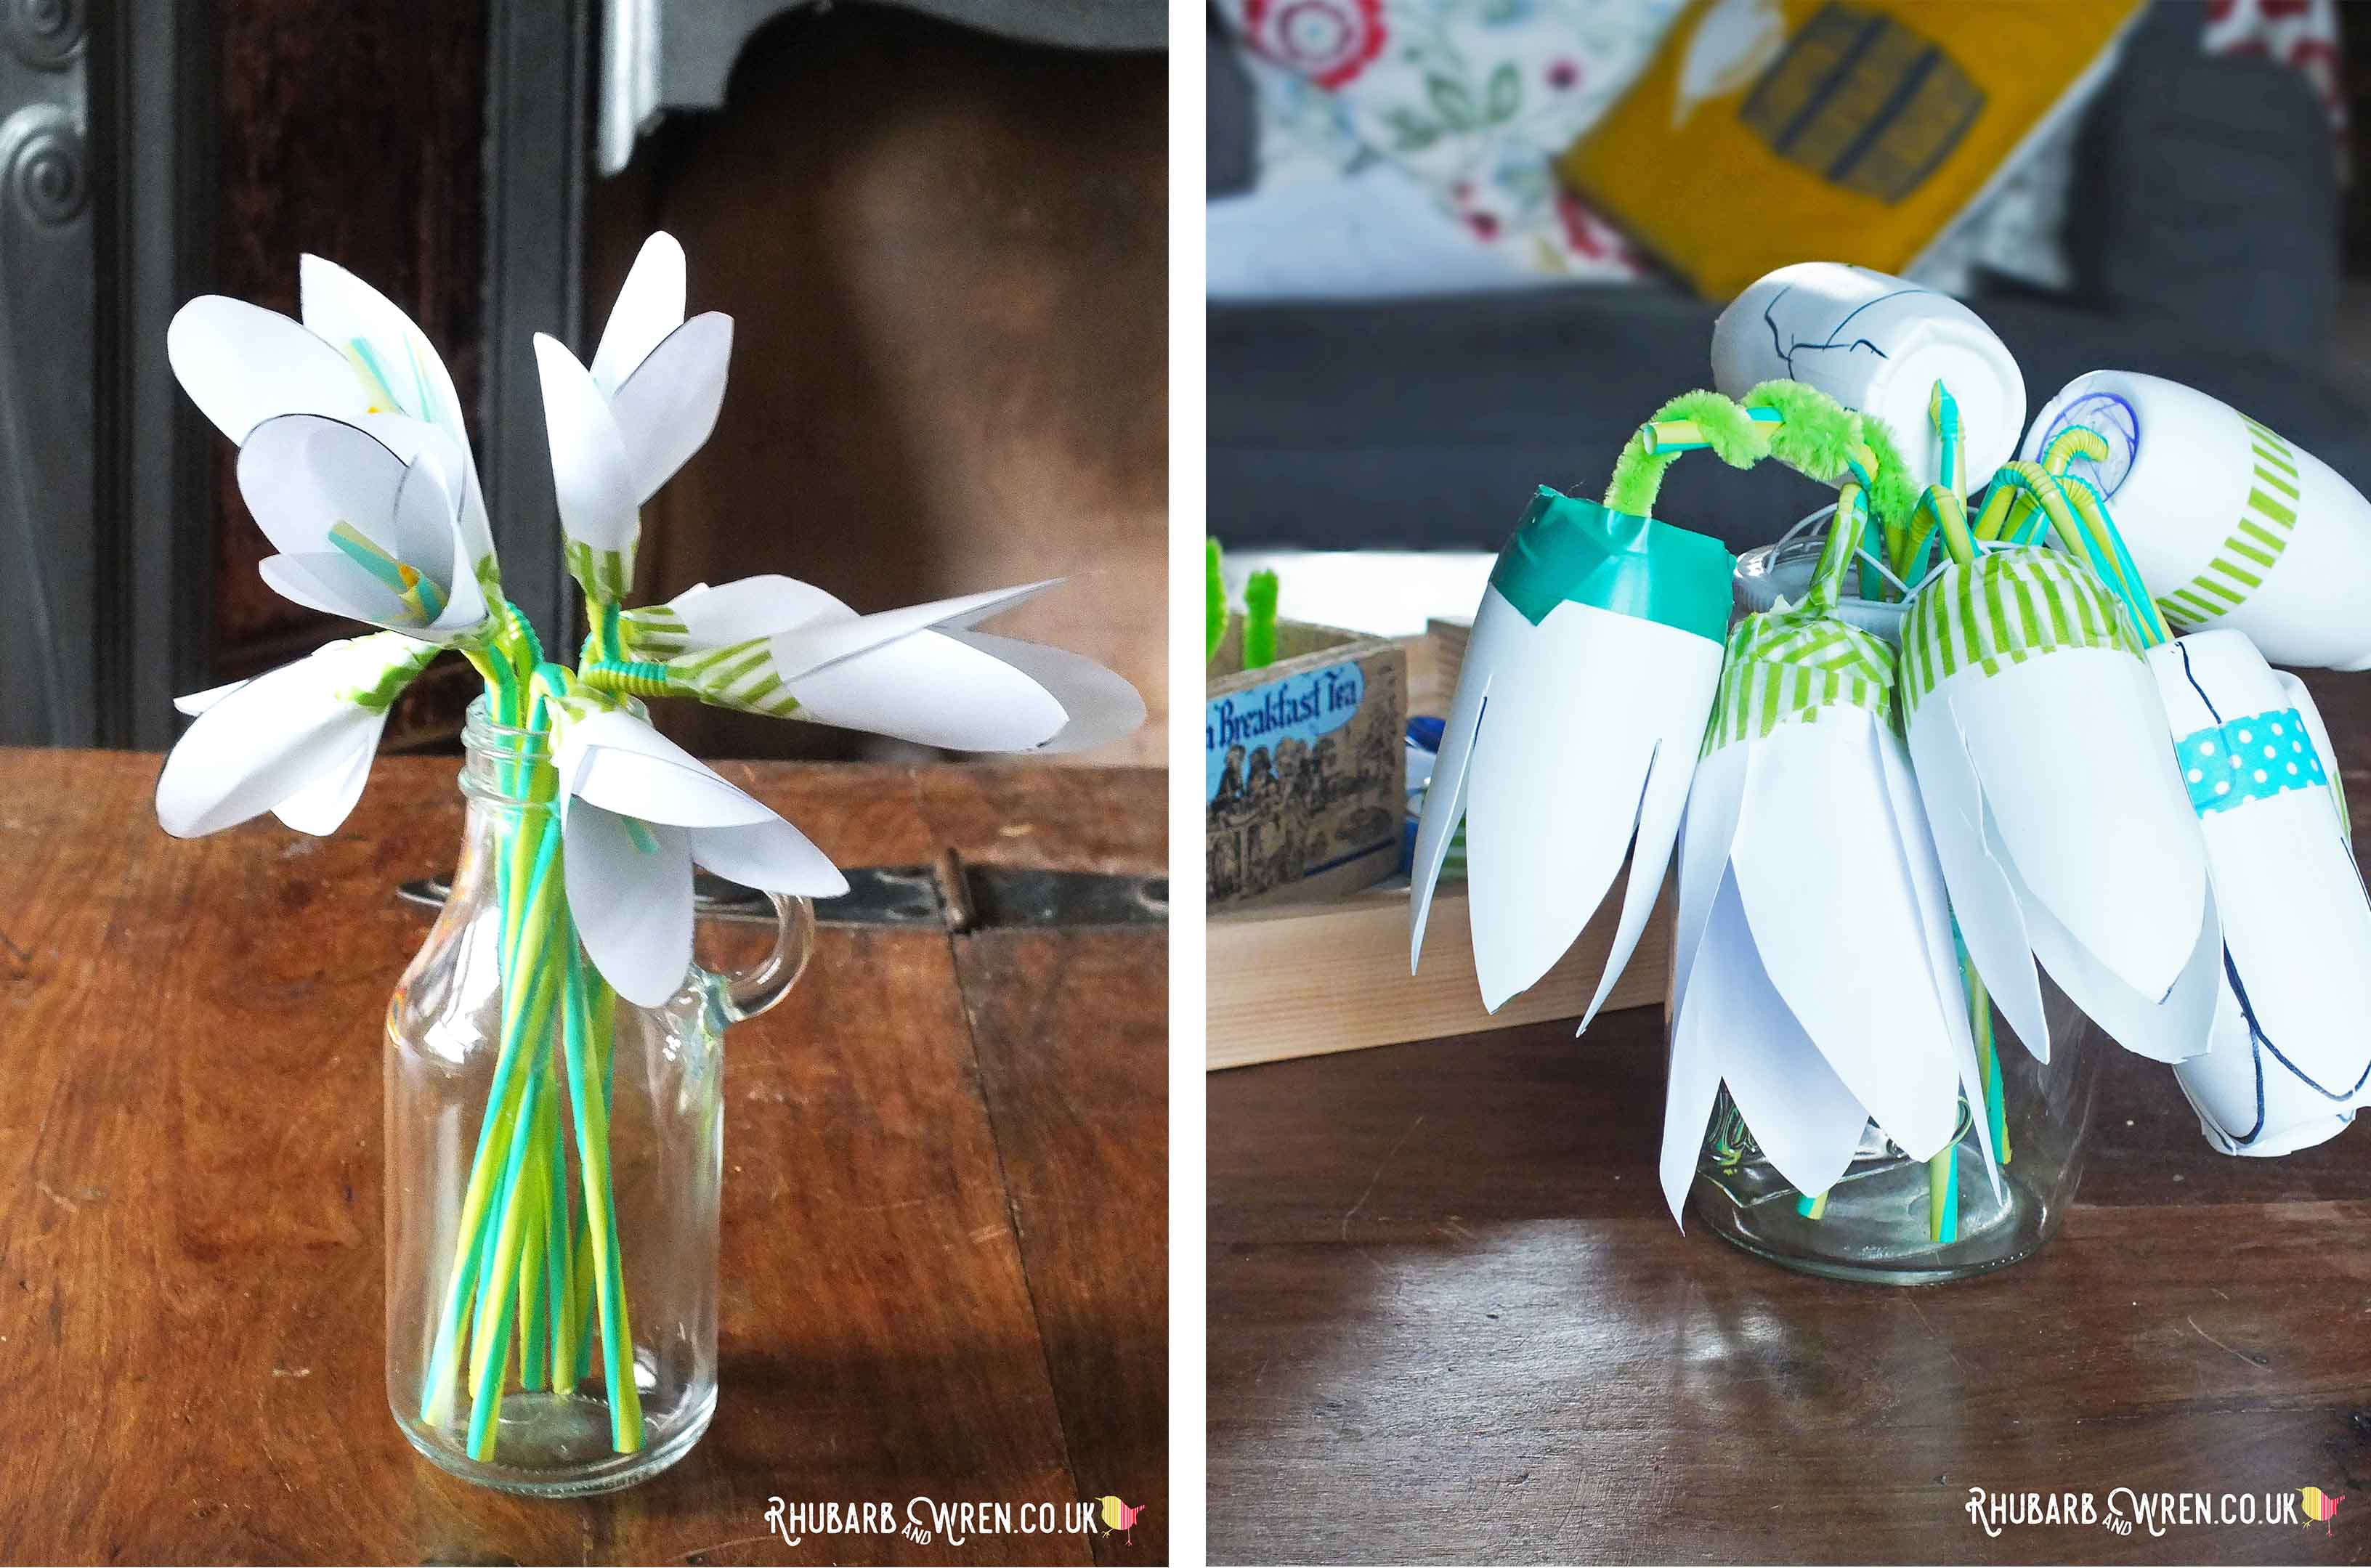 Vase of snowdrops made from paper and plastic bottles